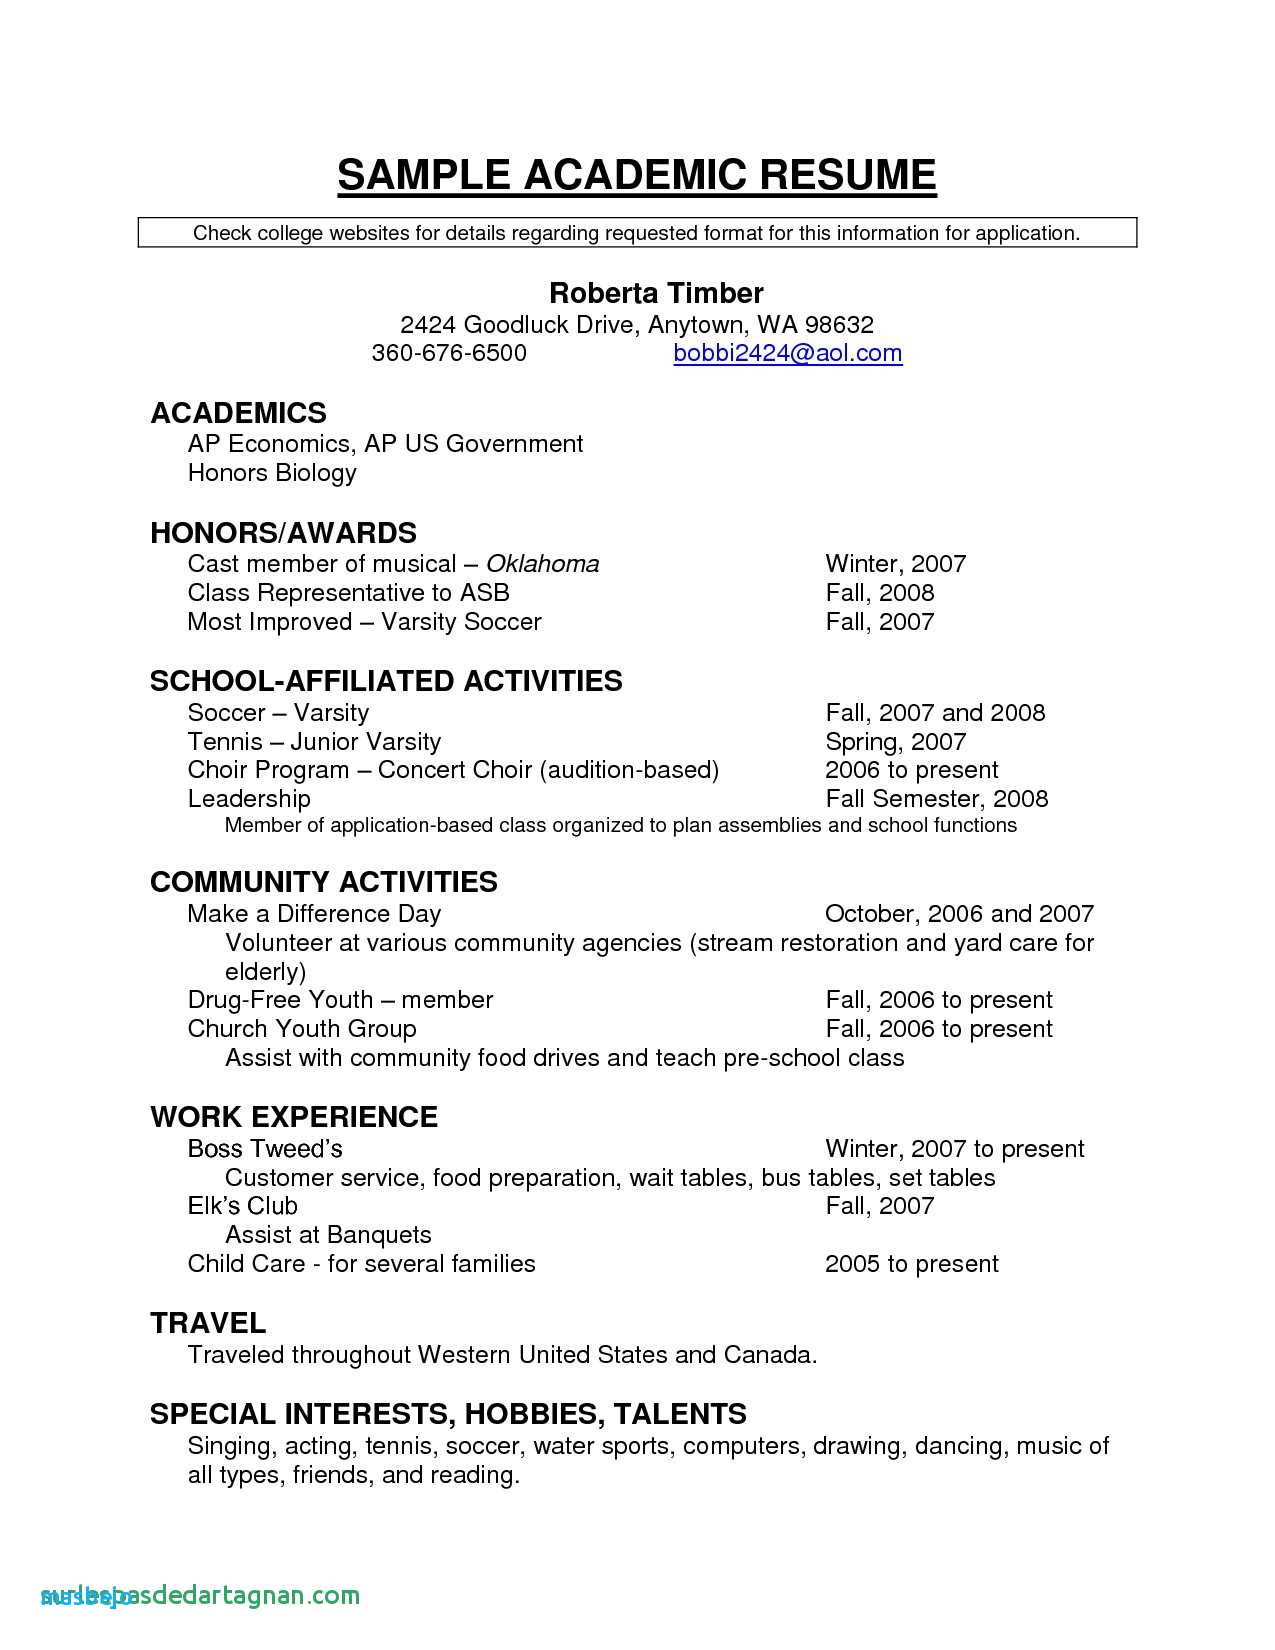 Resume High School - Puter Resume Examples Unique Resume for Highschool Students